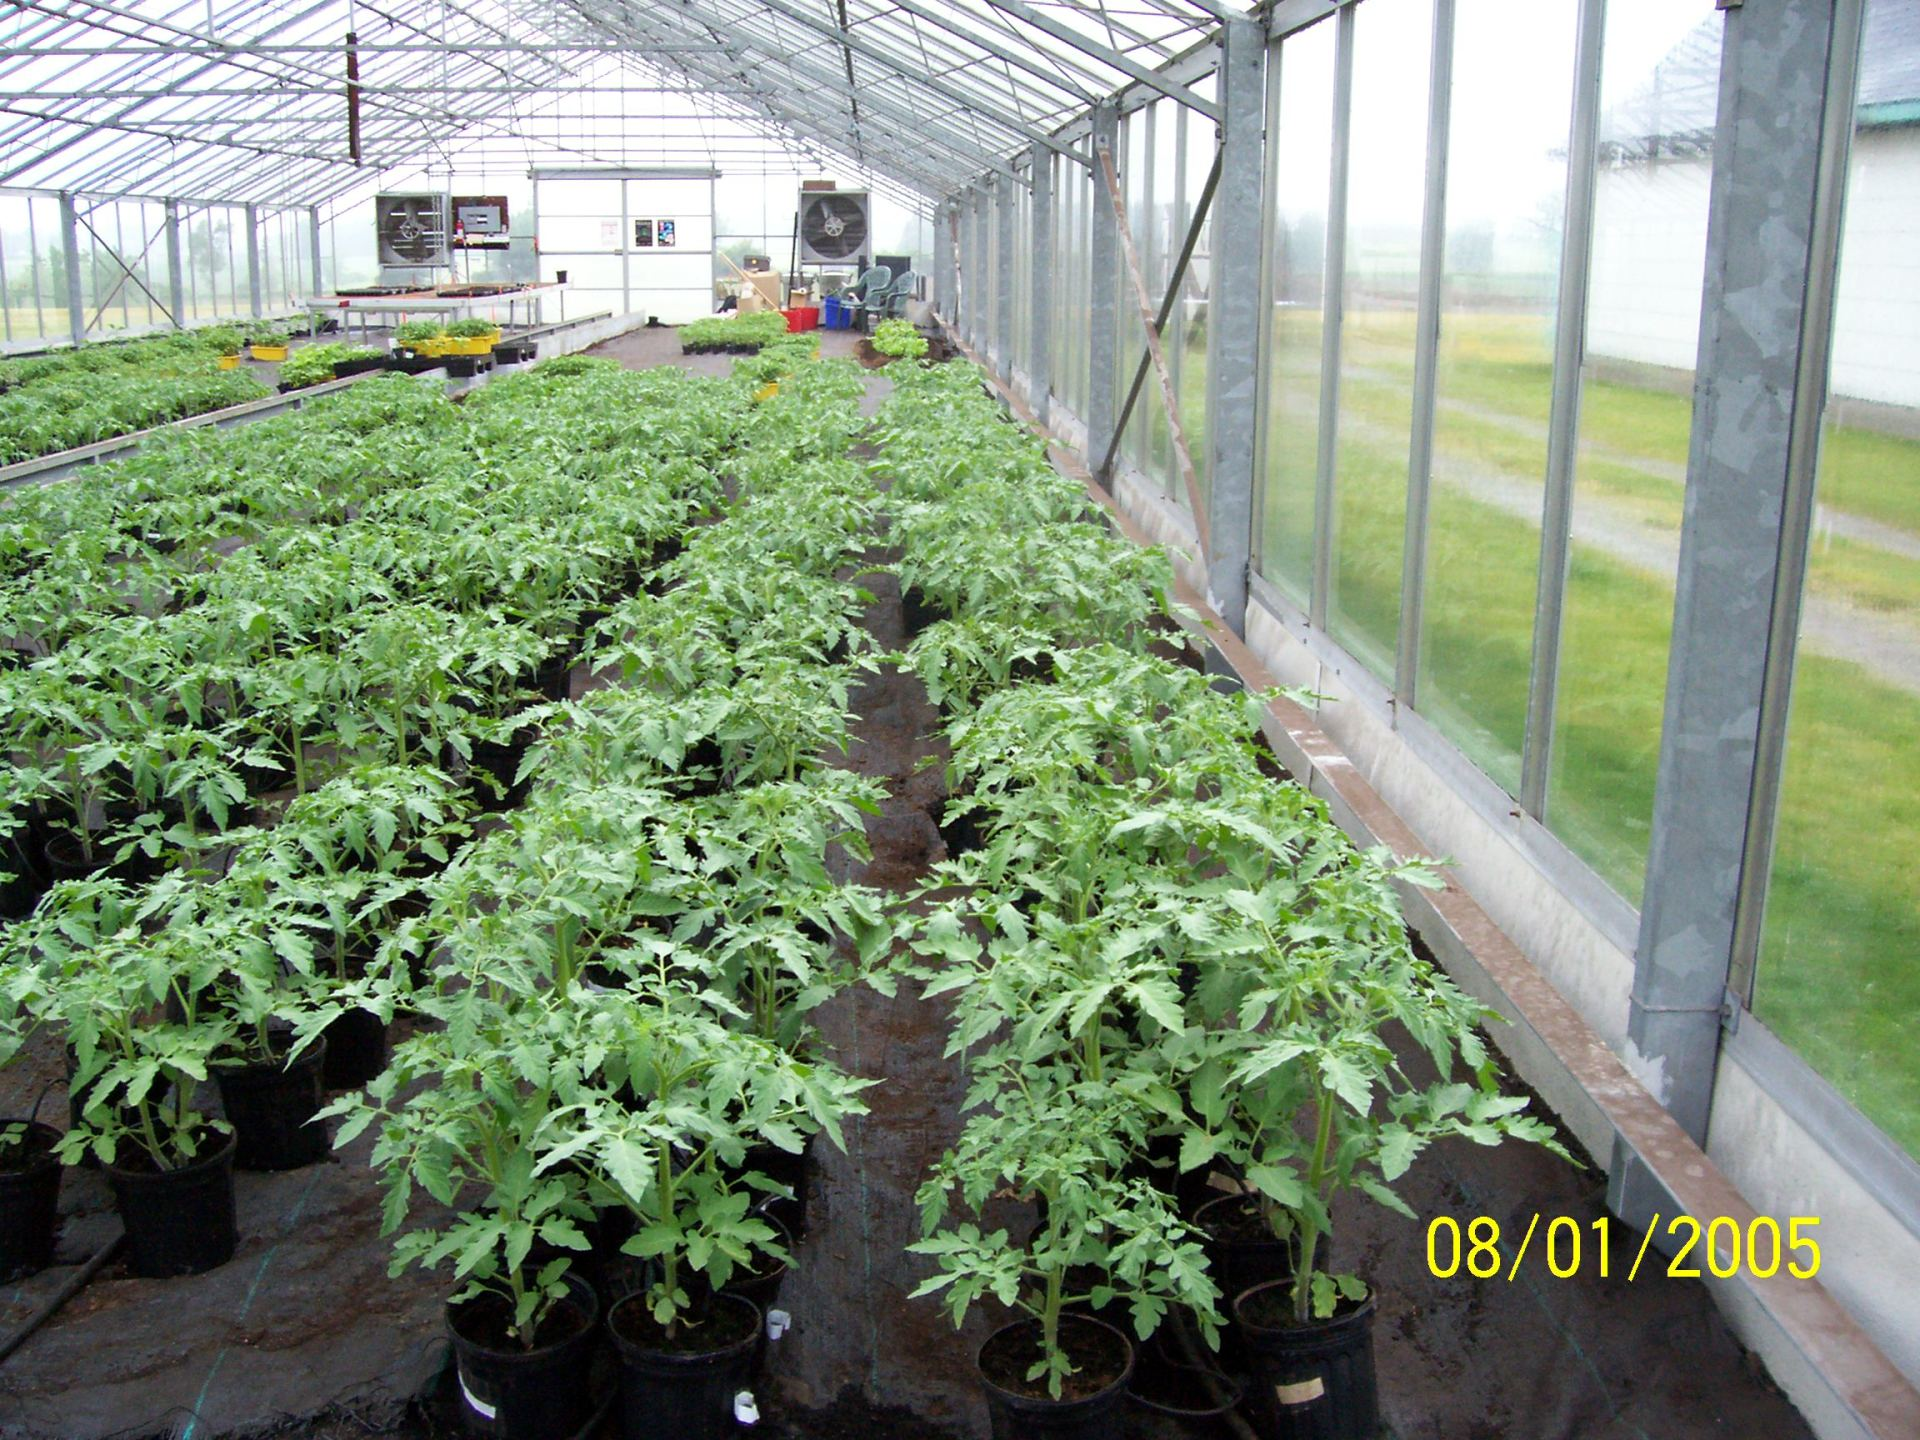 Planting session of Greenhouse Food Productions 2009 approximately 600lb of tomato